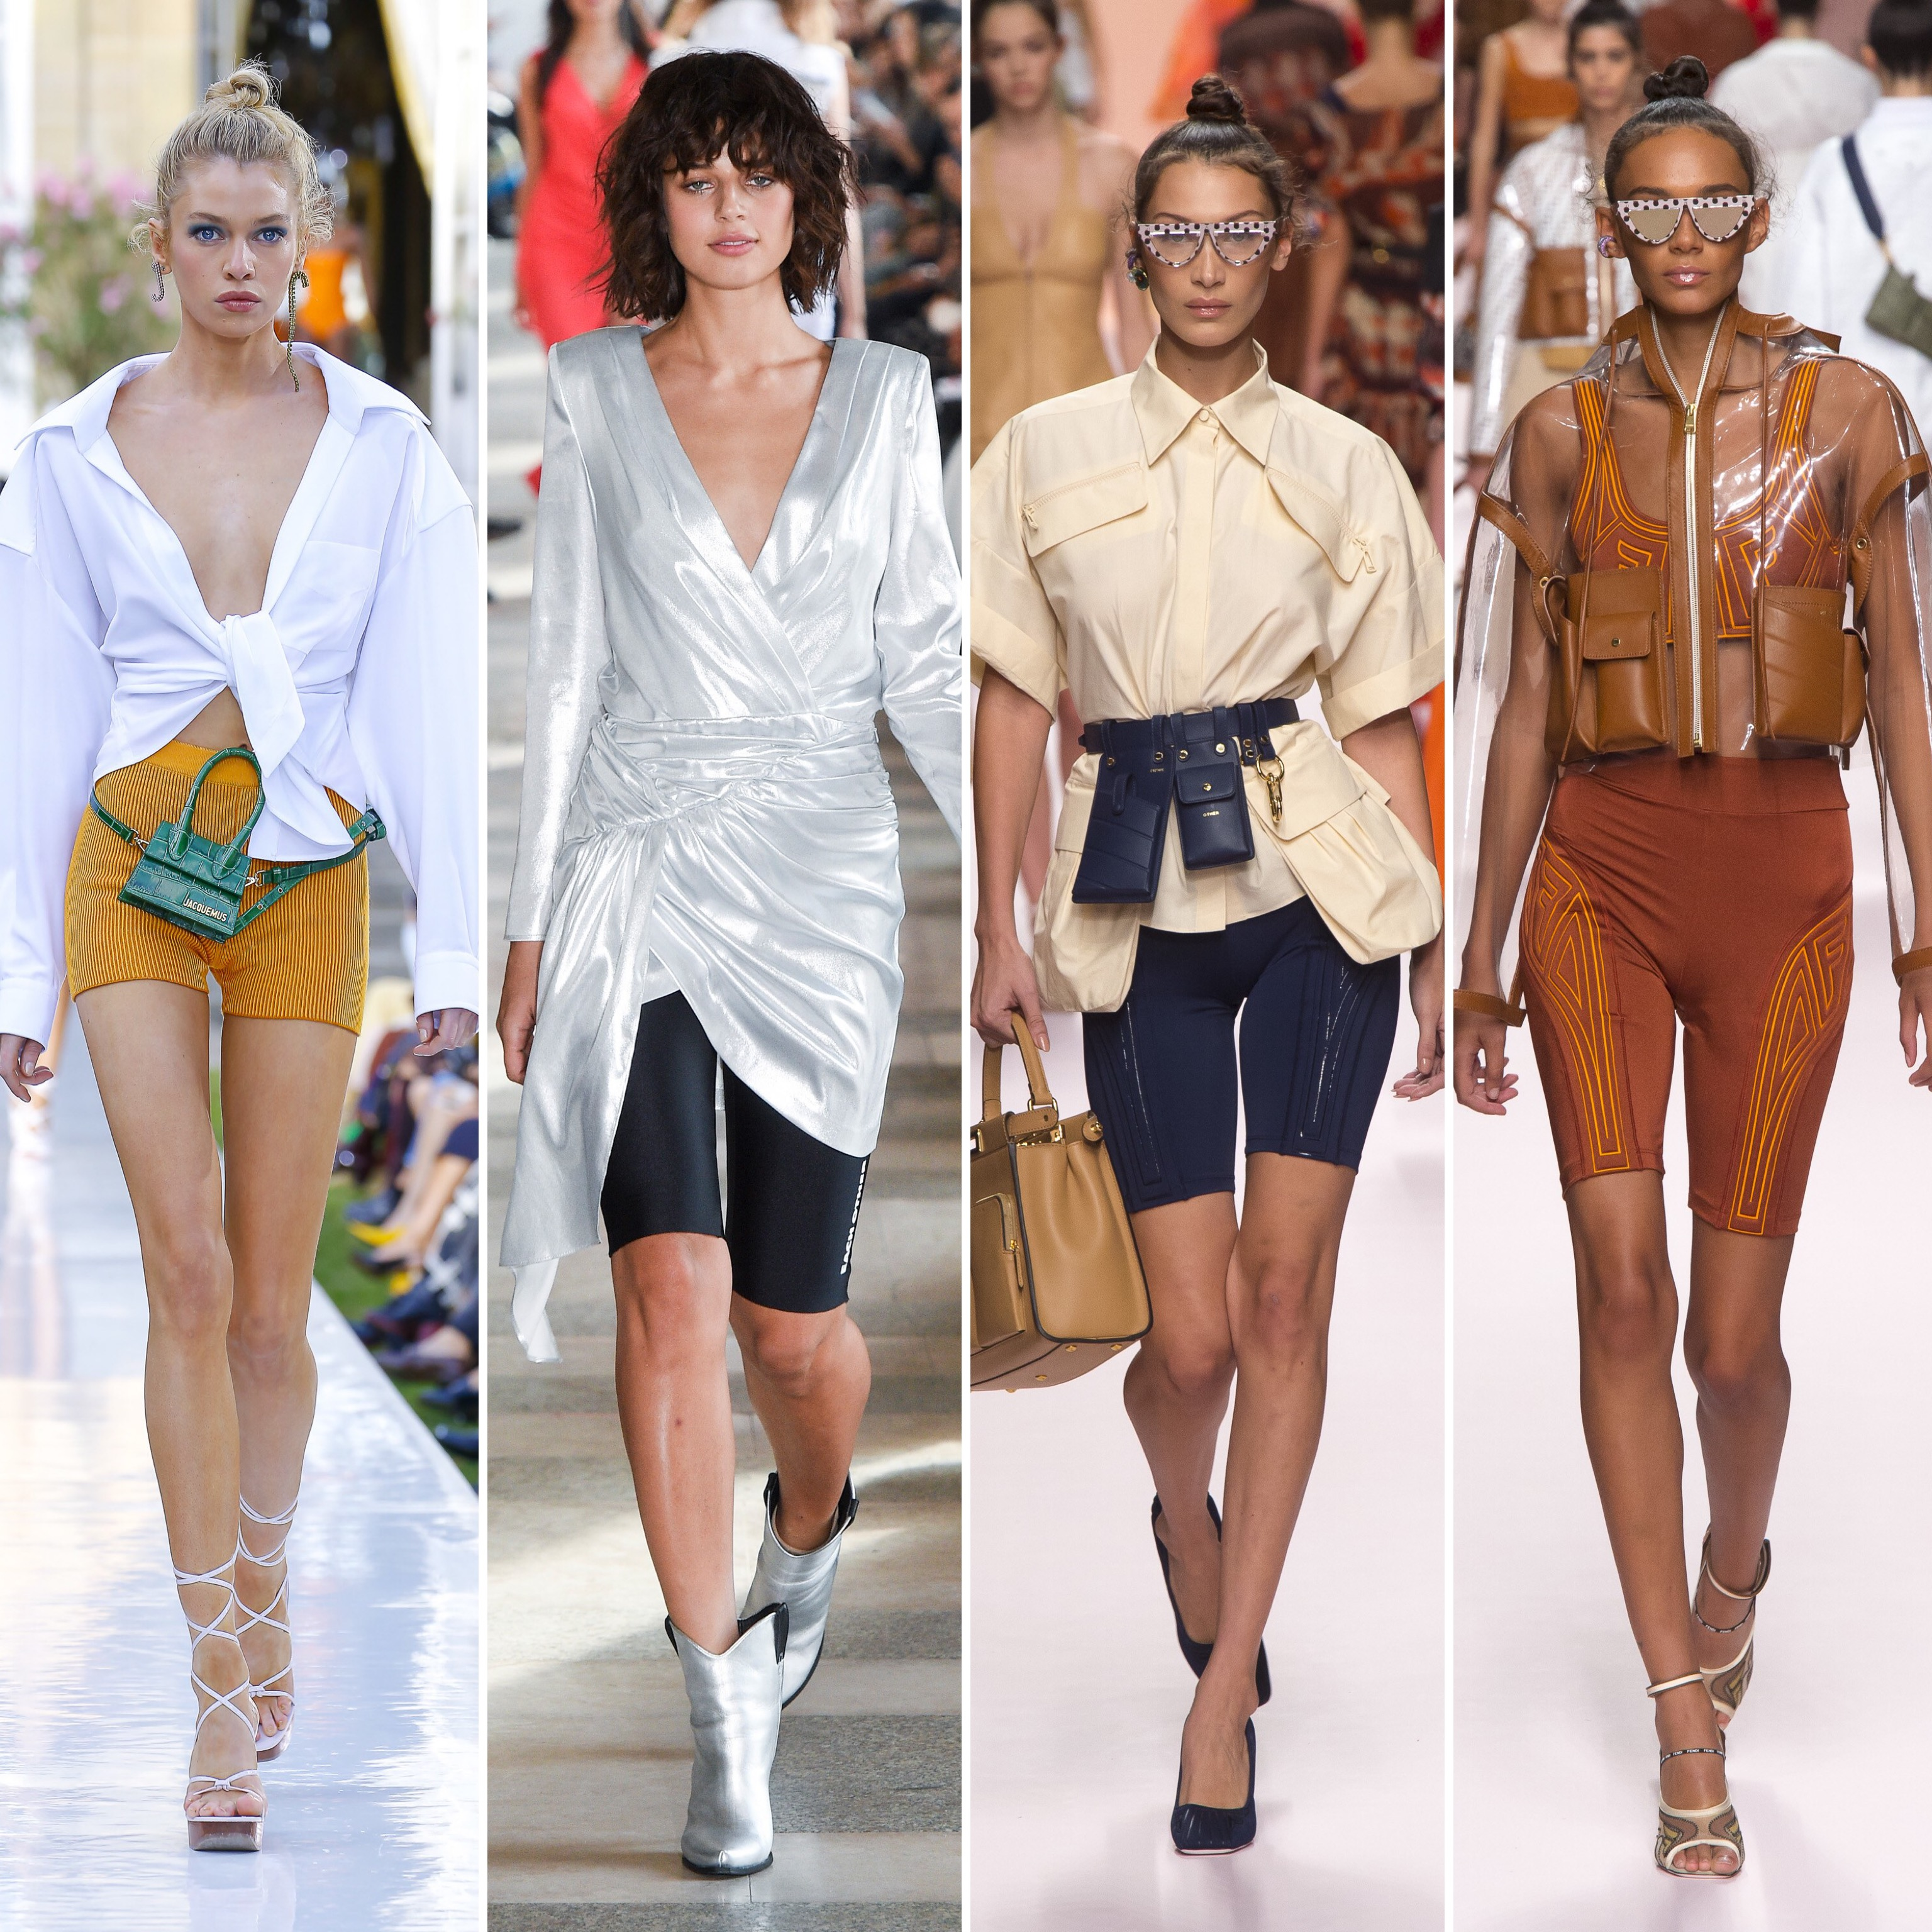 The 90's iconic bike shorts are making their comeback. And they are actually flattering. Find some tips to know how to wear the cycling shorts in 2019. By Julia Comil Fashion Blogger